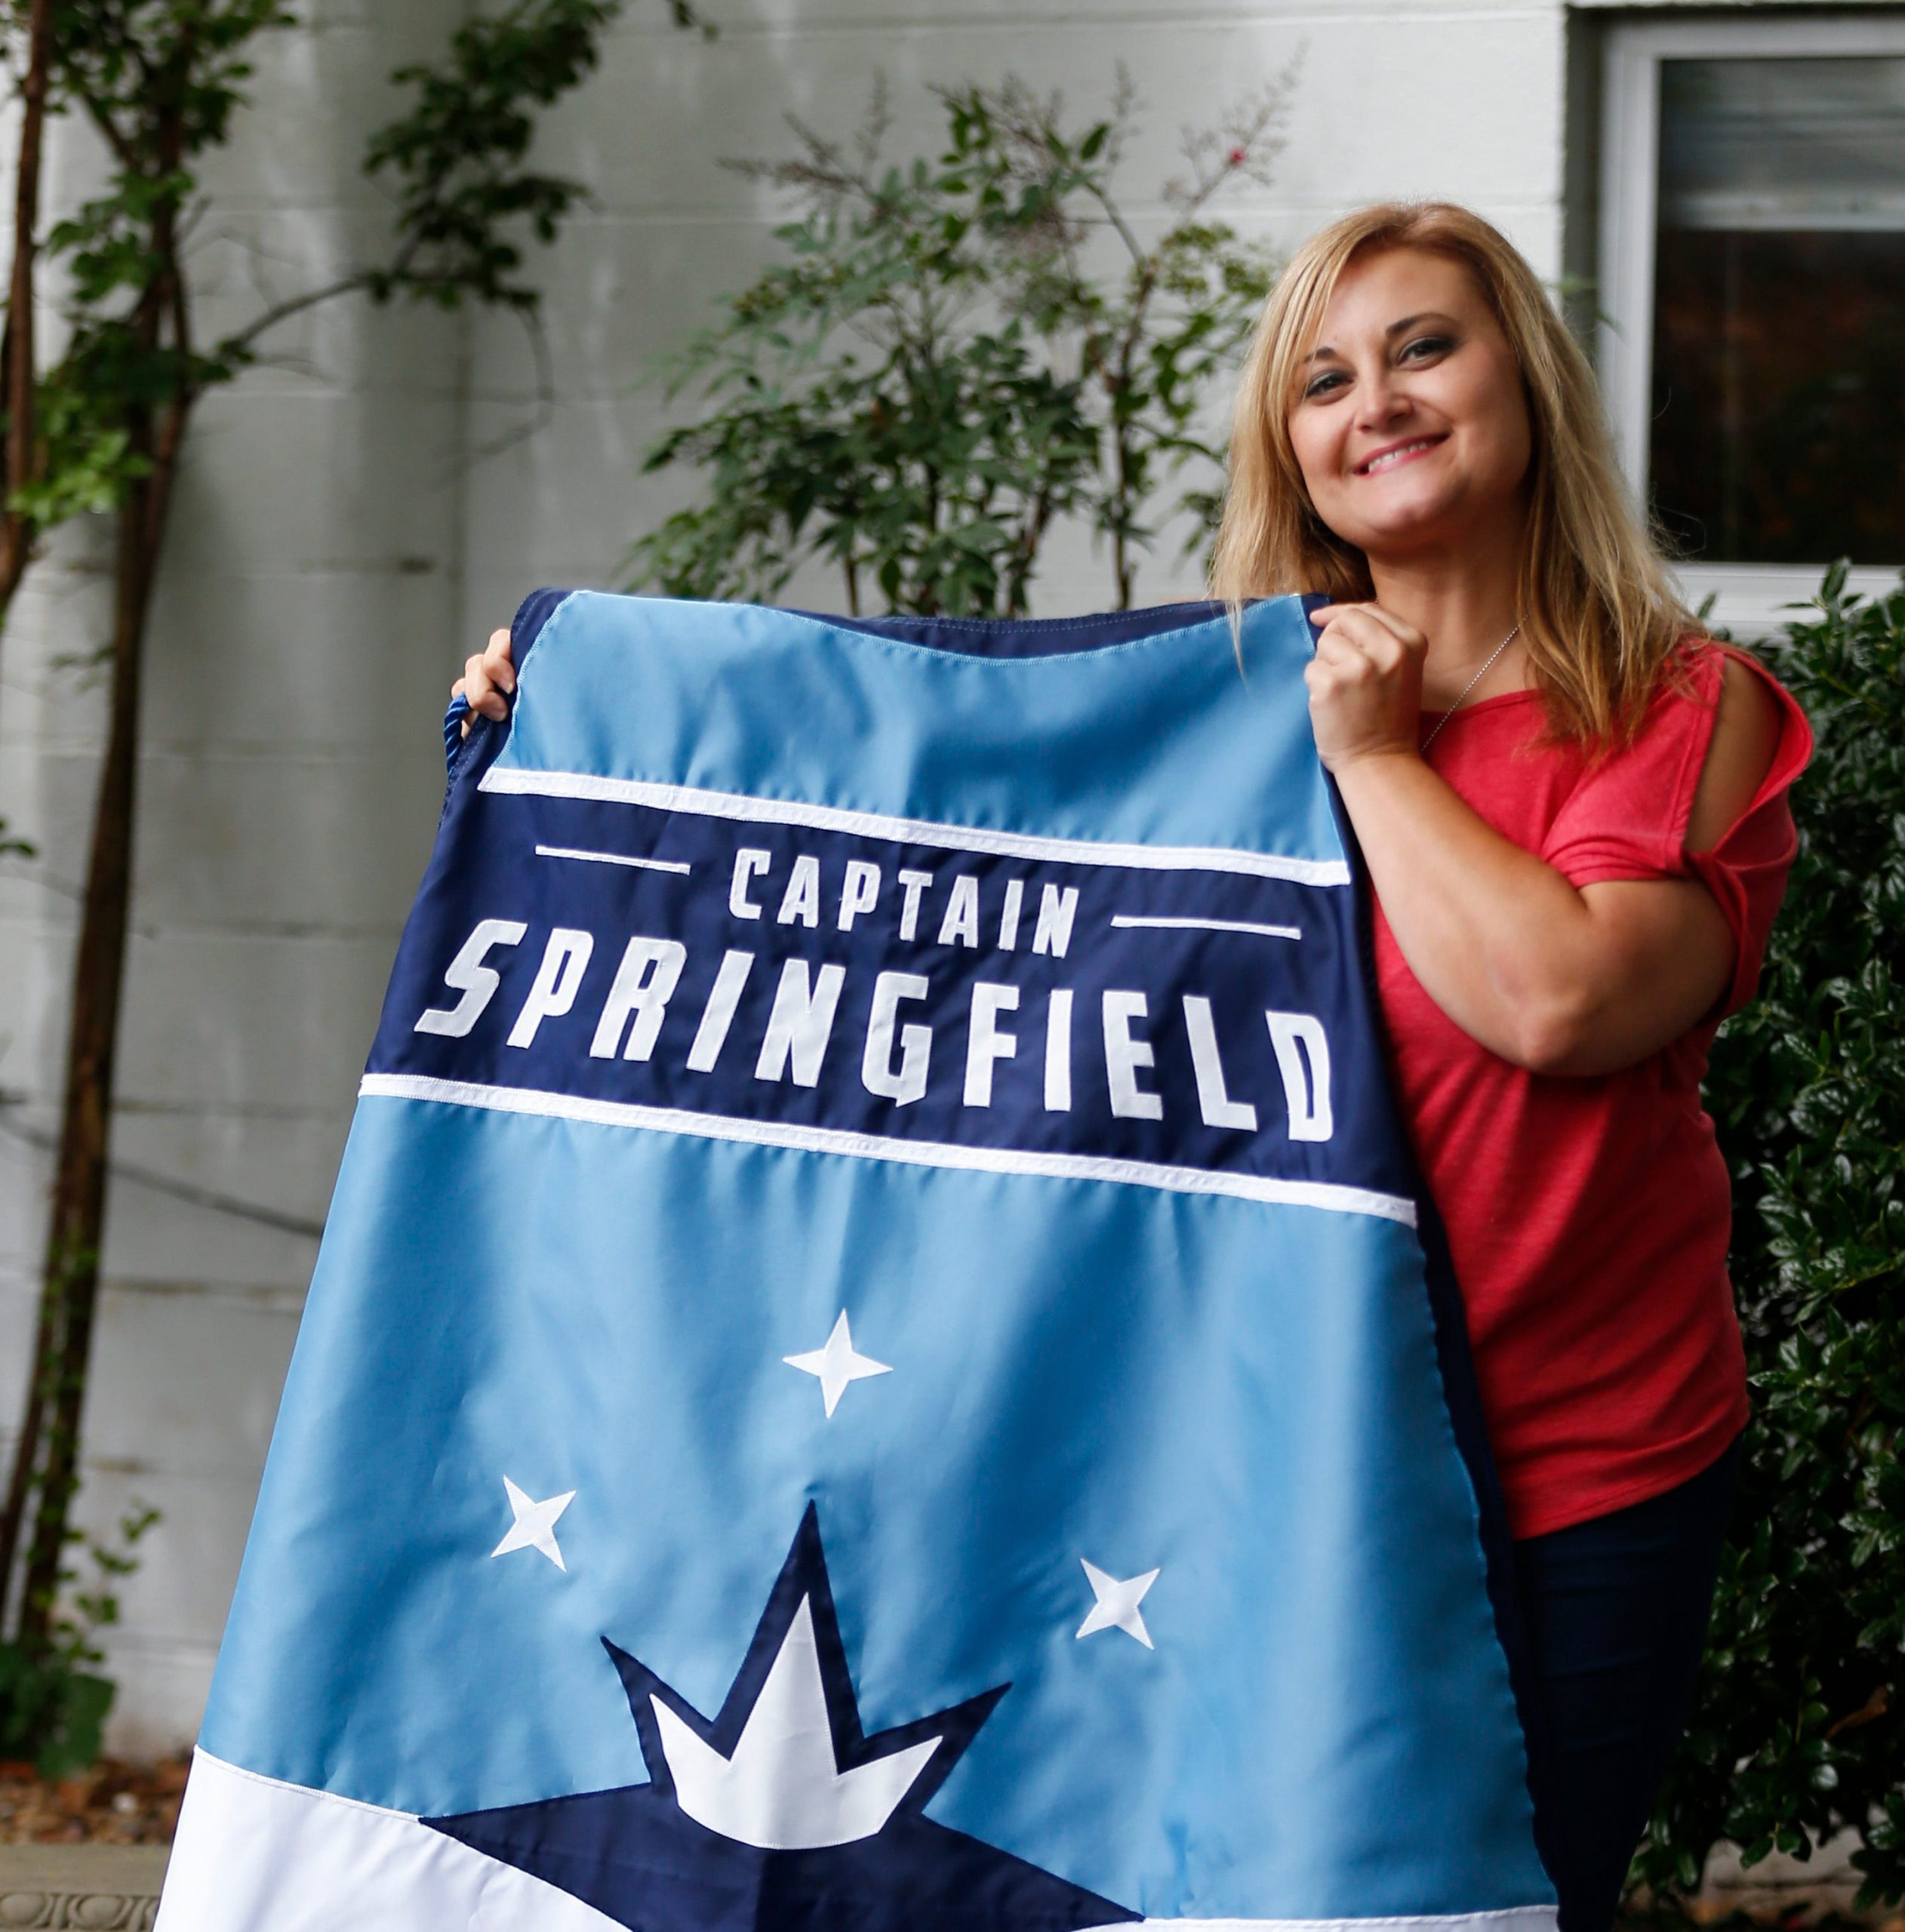 Janelle Reed, the outreach and special events manager for Victory Mission, was presented a cape after being named the third Captain Springfield.